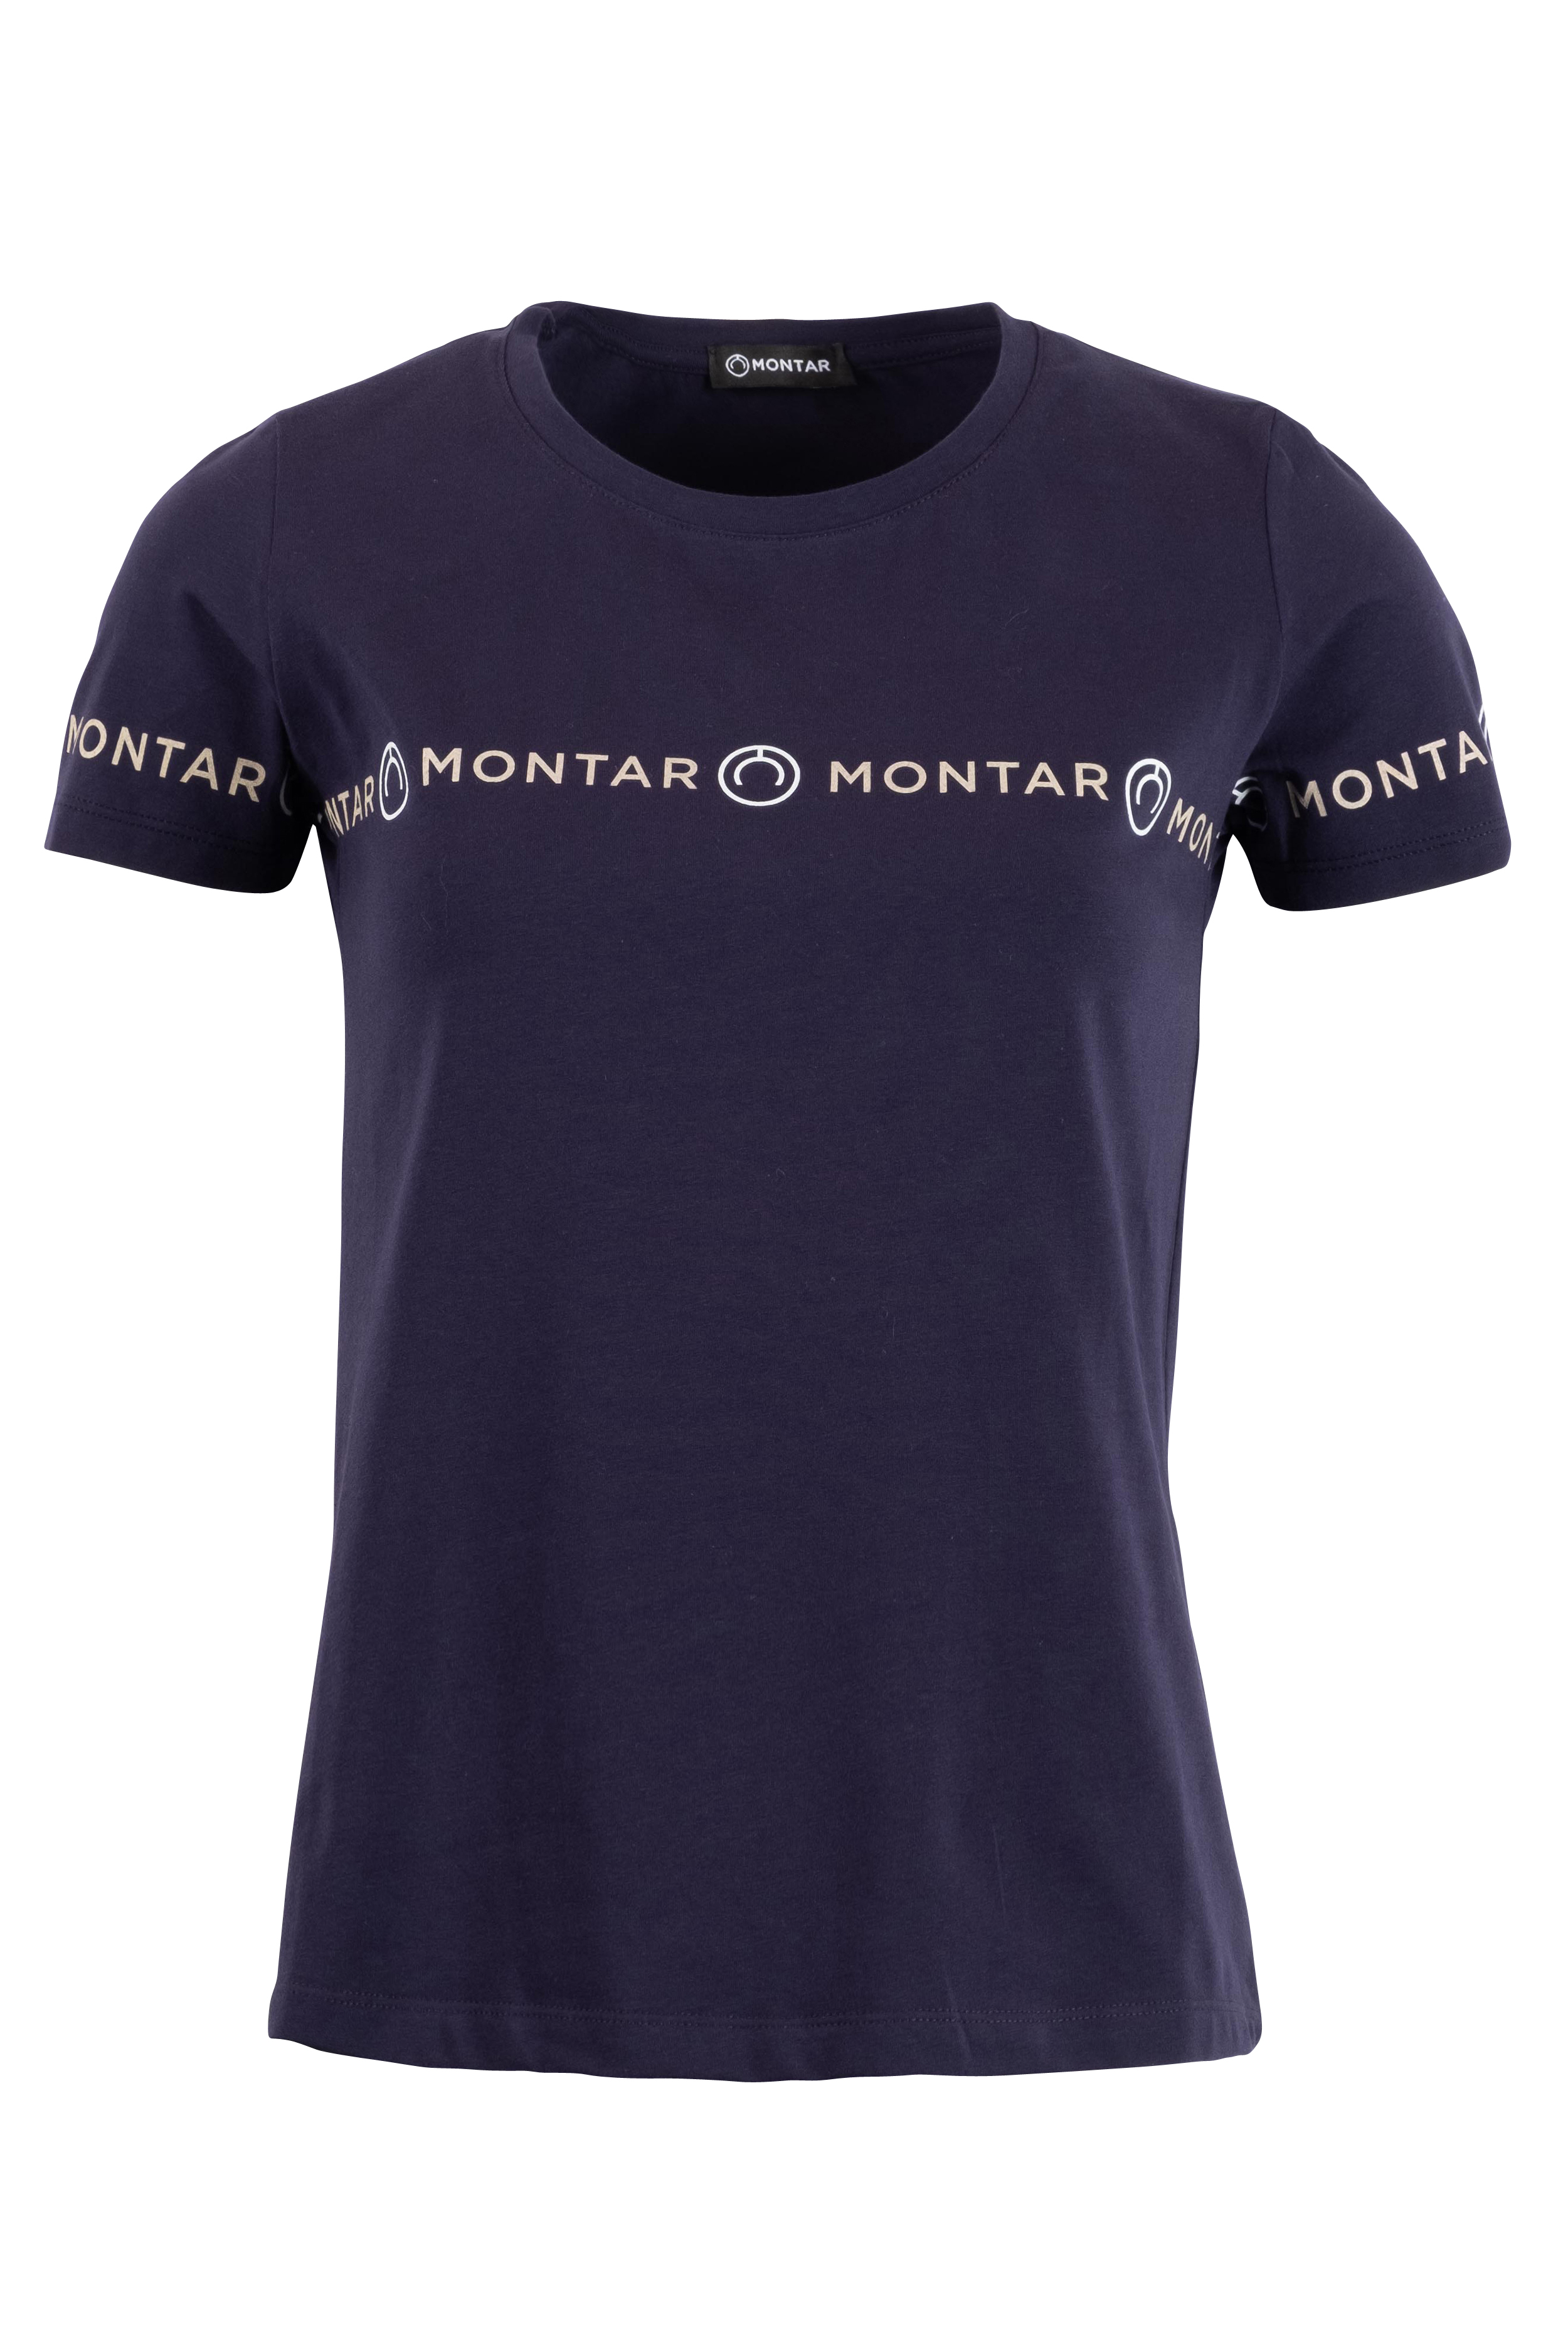 ts2013-7_front